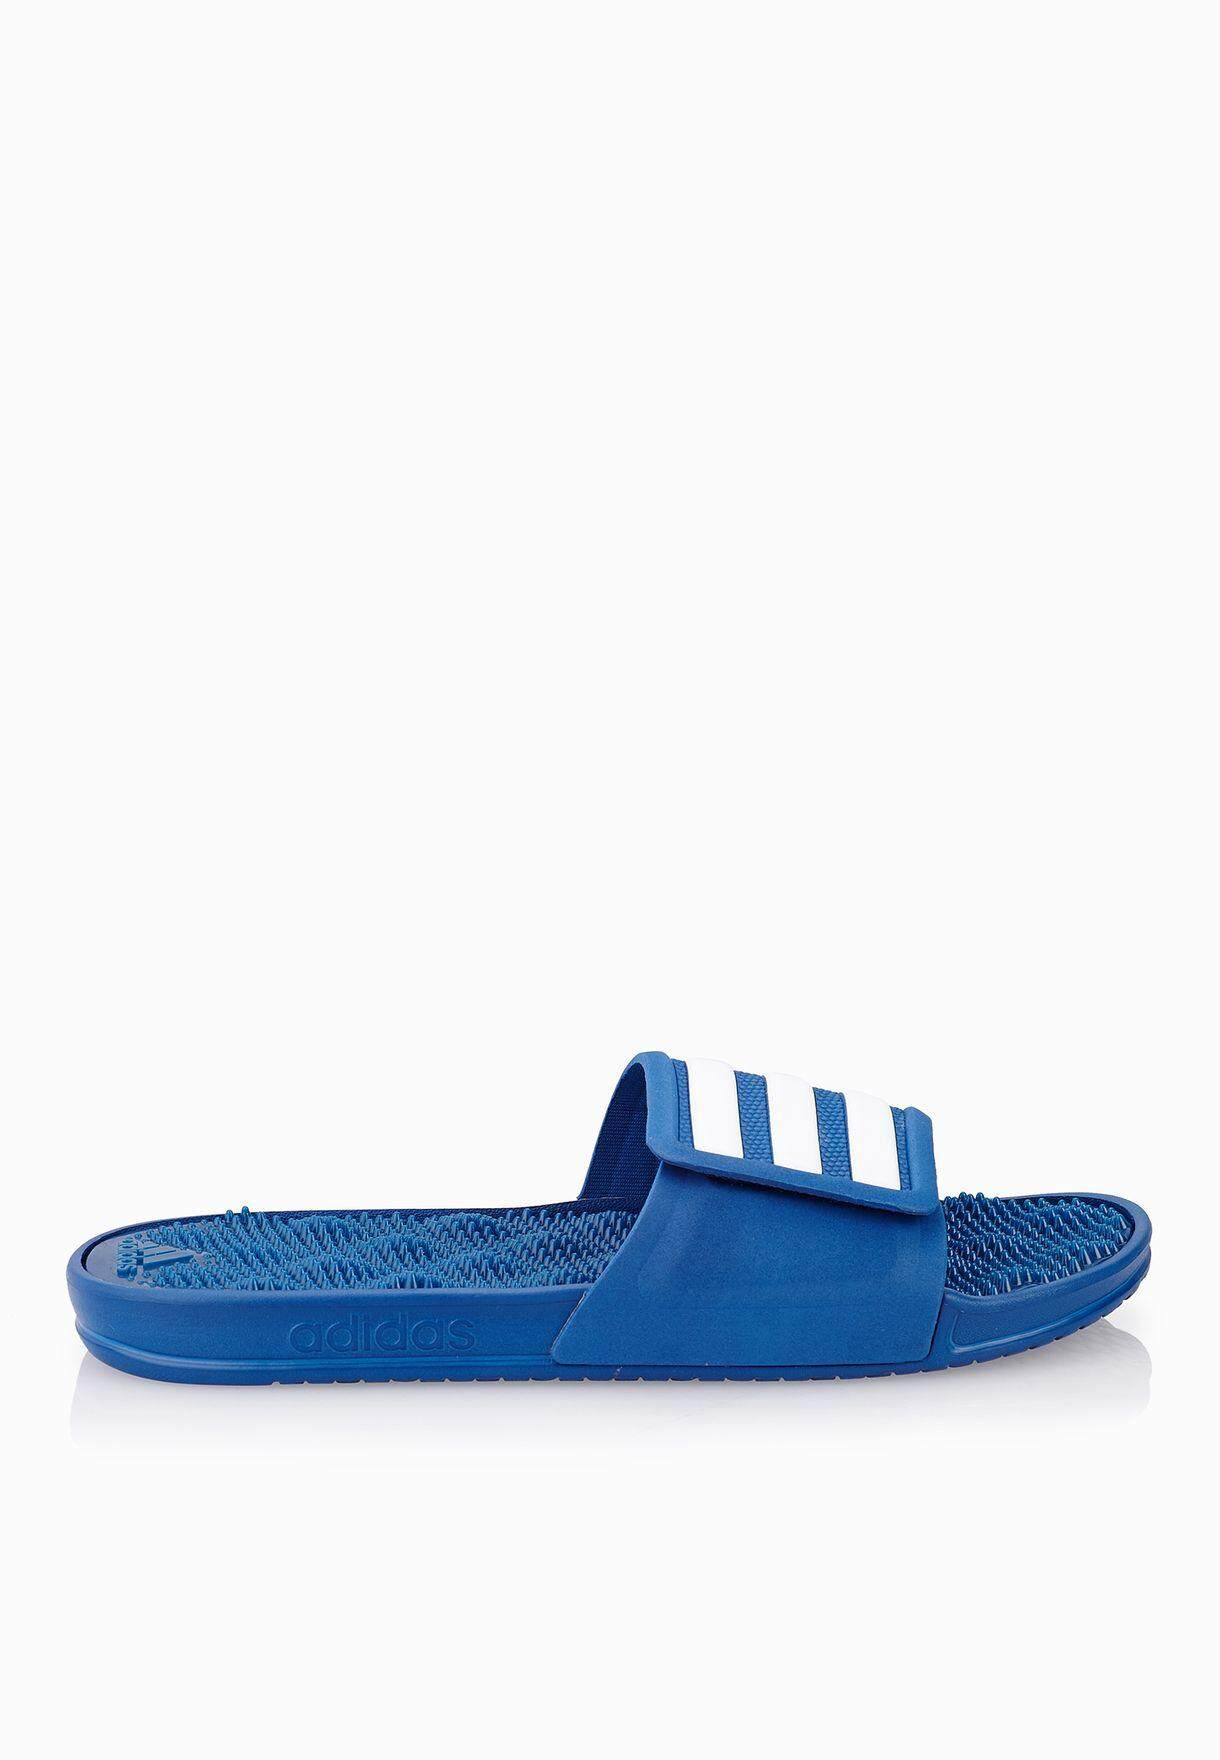 reputable site 91d74 1304b adidas Adissage 2.0 Blue and White Stripe Slides Sandal